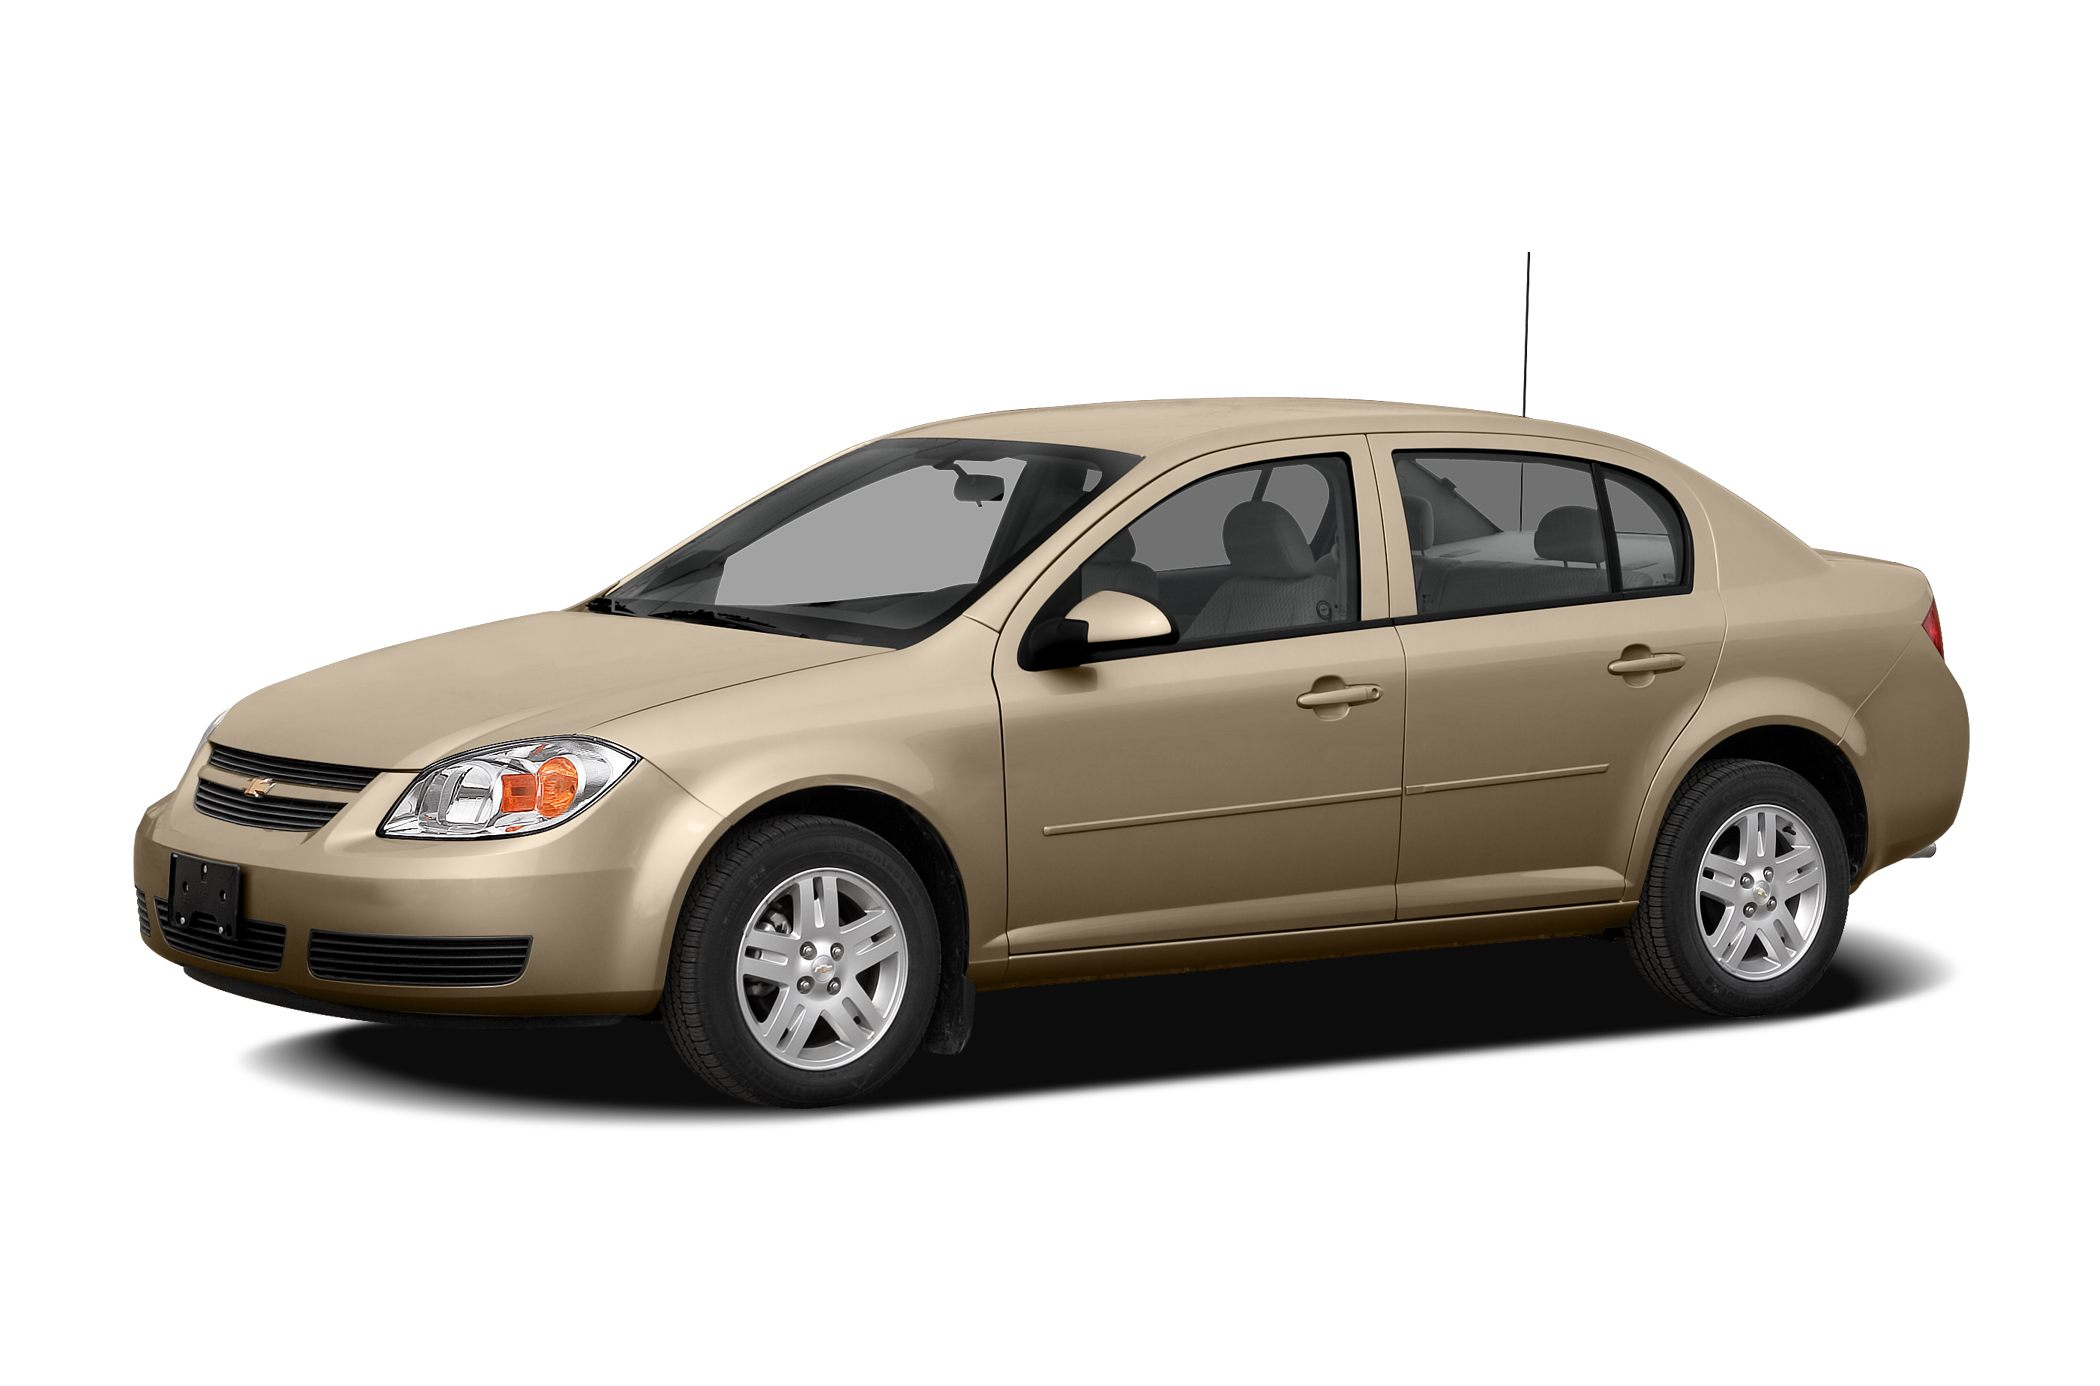 CAB80CHC212A0101 Cool Review About 2006 Cobalt Ss Specs with Gorgeous Gallery Cars Review